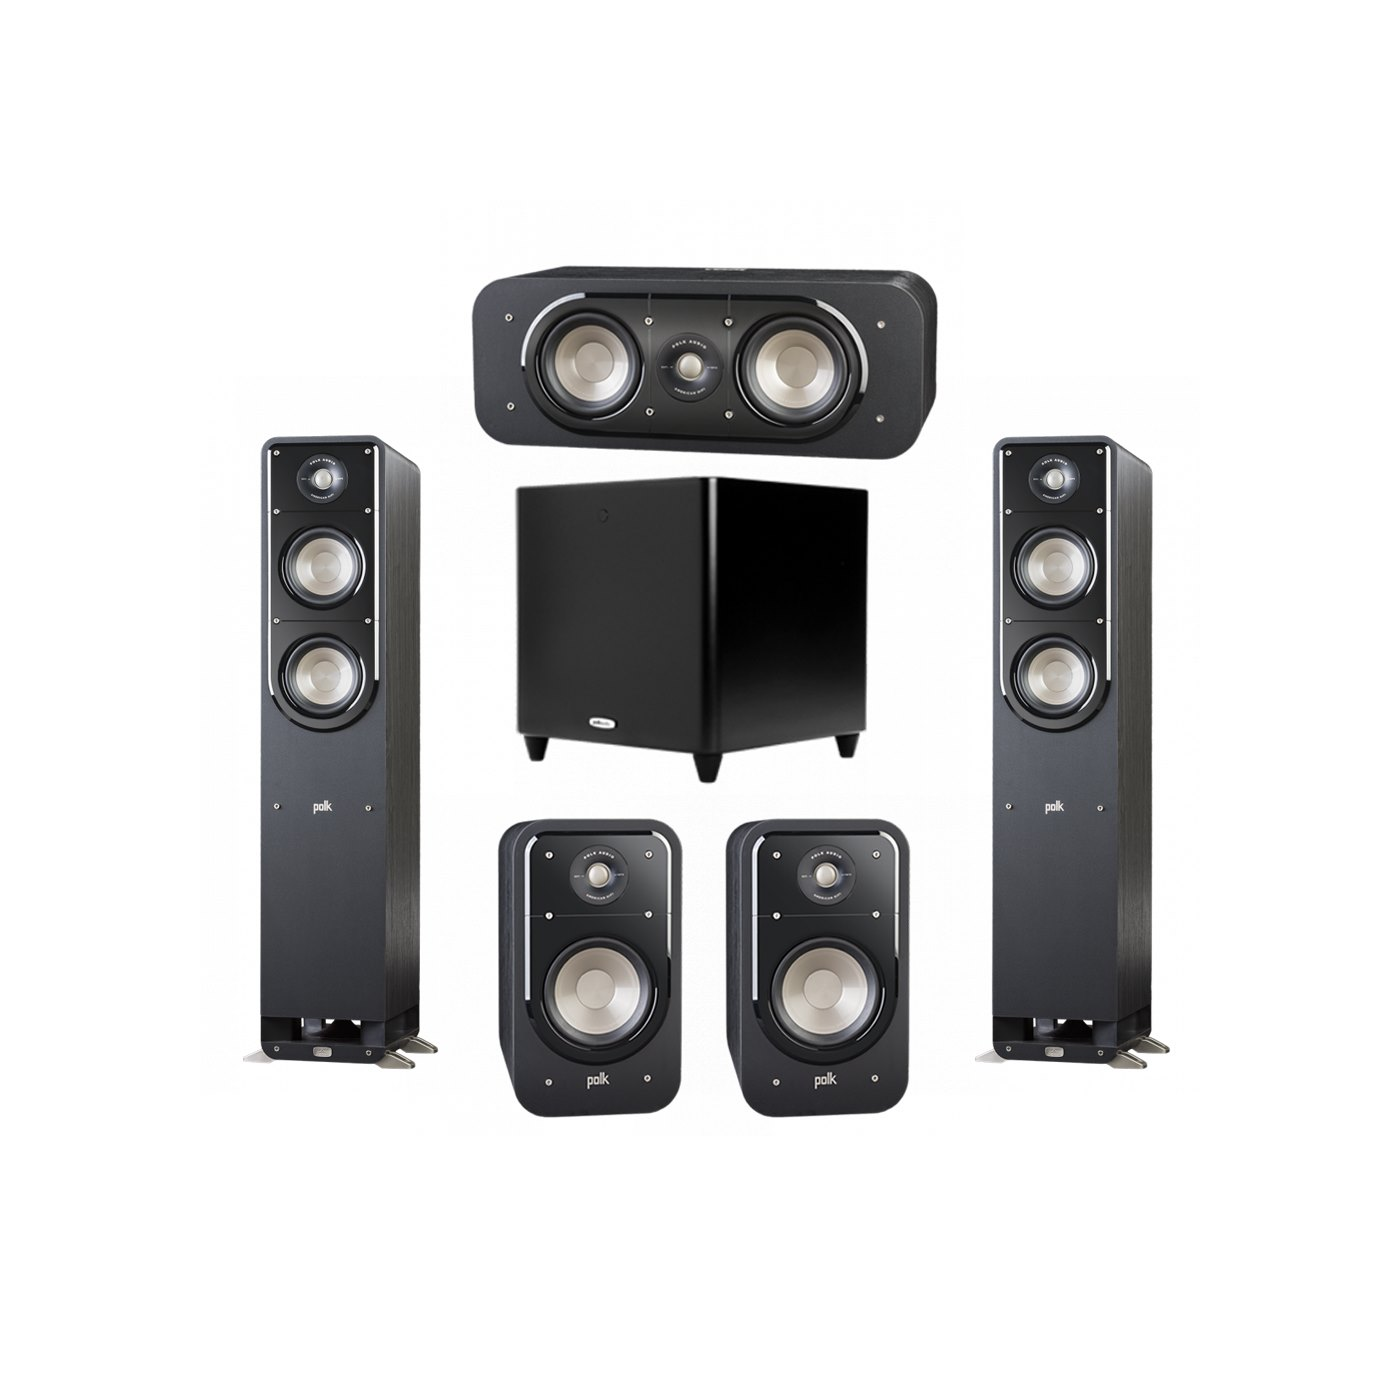 Polk Audio Signature 5.1 System with 2 S50 Tower Speaker, 1 Polk S30 Center Speaker, 2 Polk S20 Bookshelf Speaker, 1 Polk DSW PRO 660 wi Subwoofer